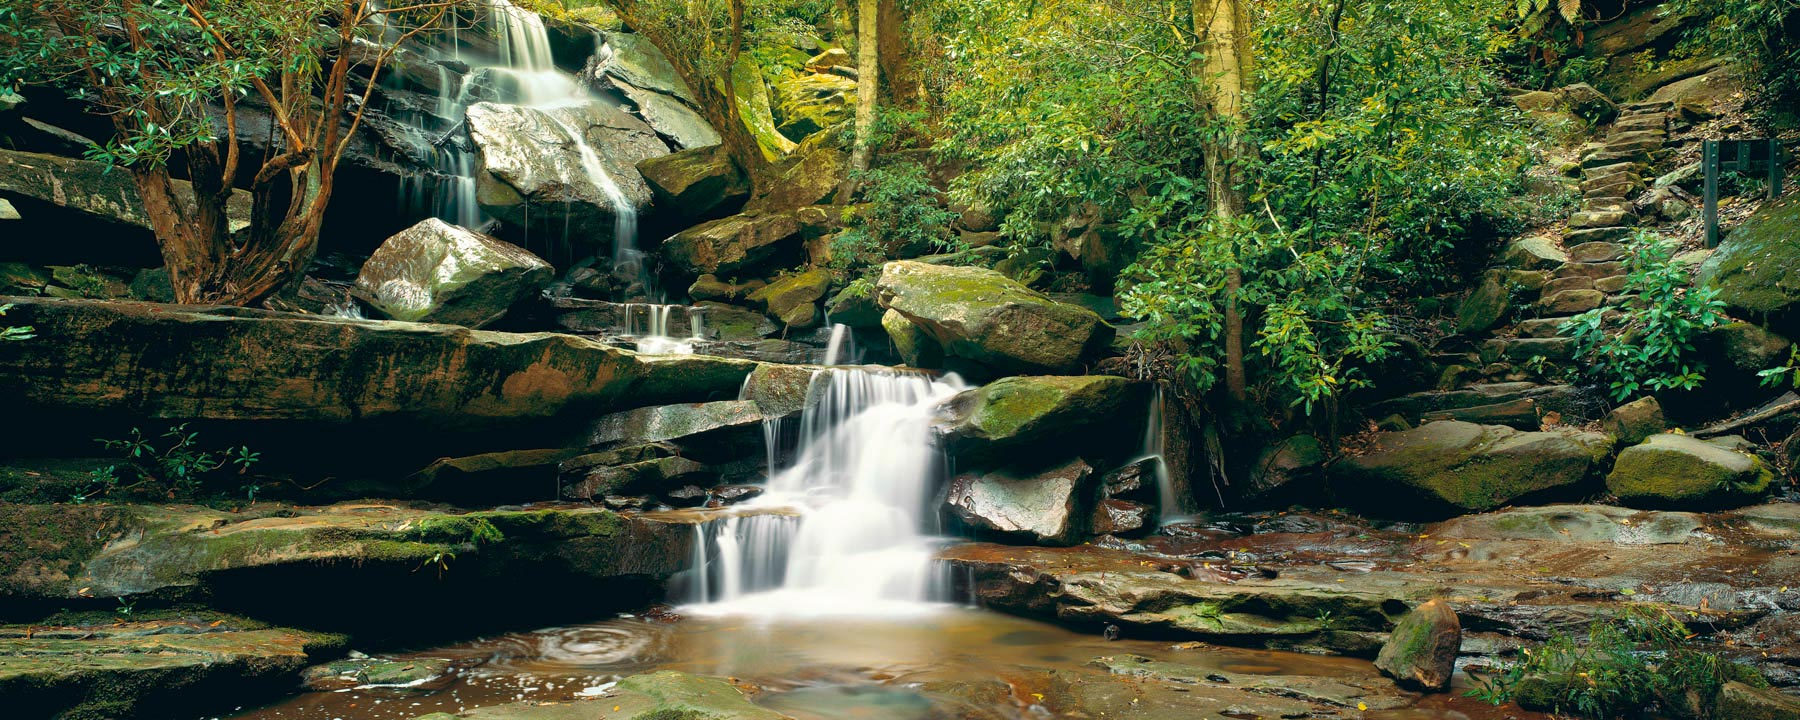 Tranquility, Somersby Falls, Australia